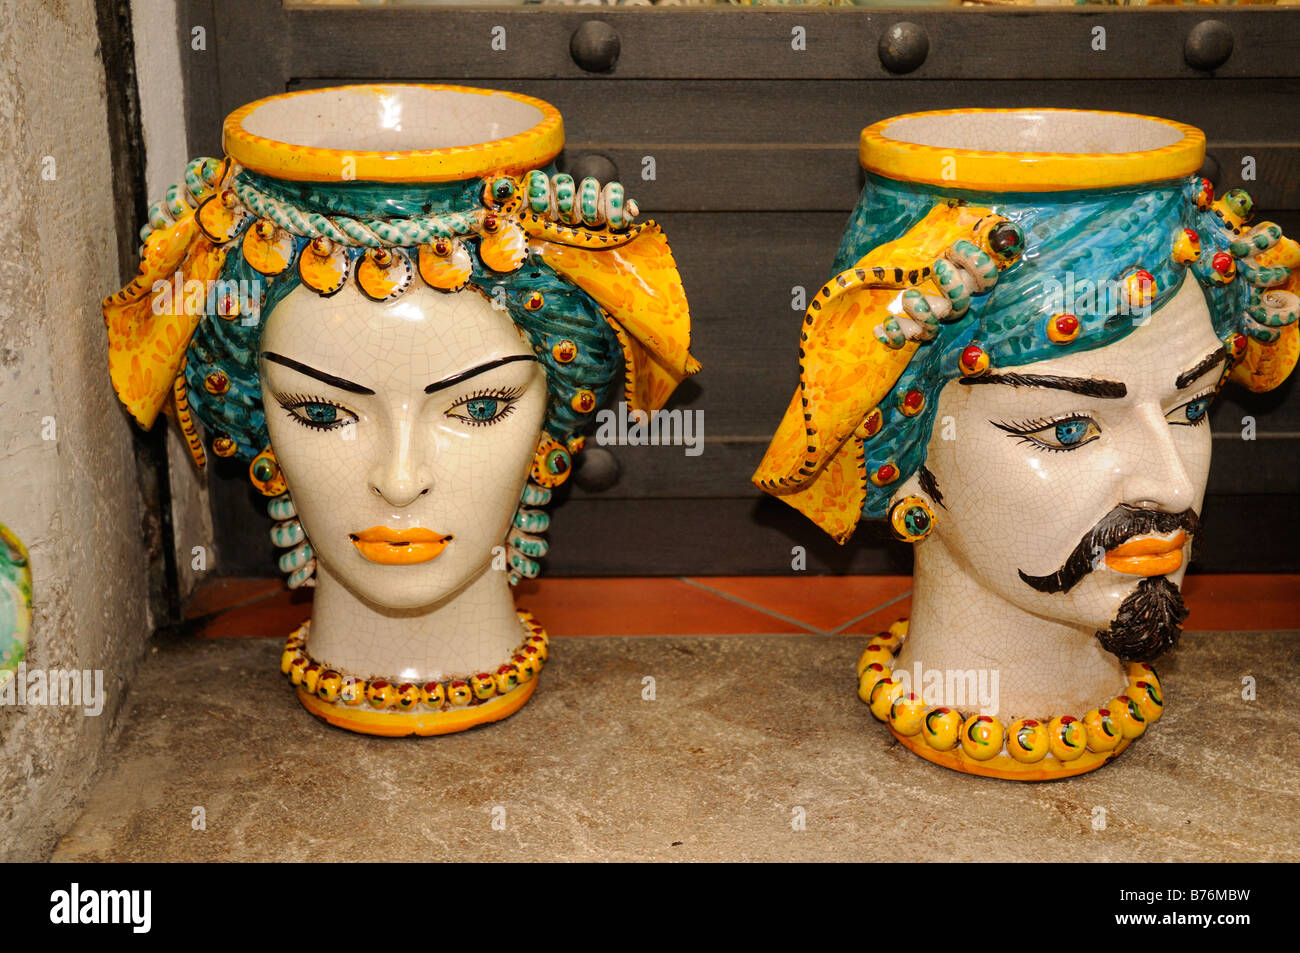 Typical Sicilian Pottery Items On Sale In Shop In Taormina In Sicily B Mbw